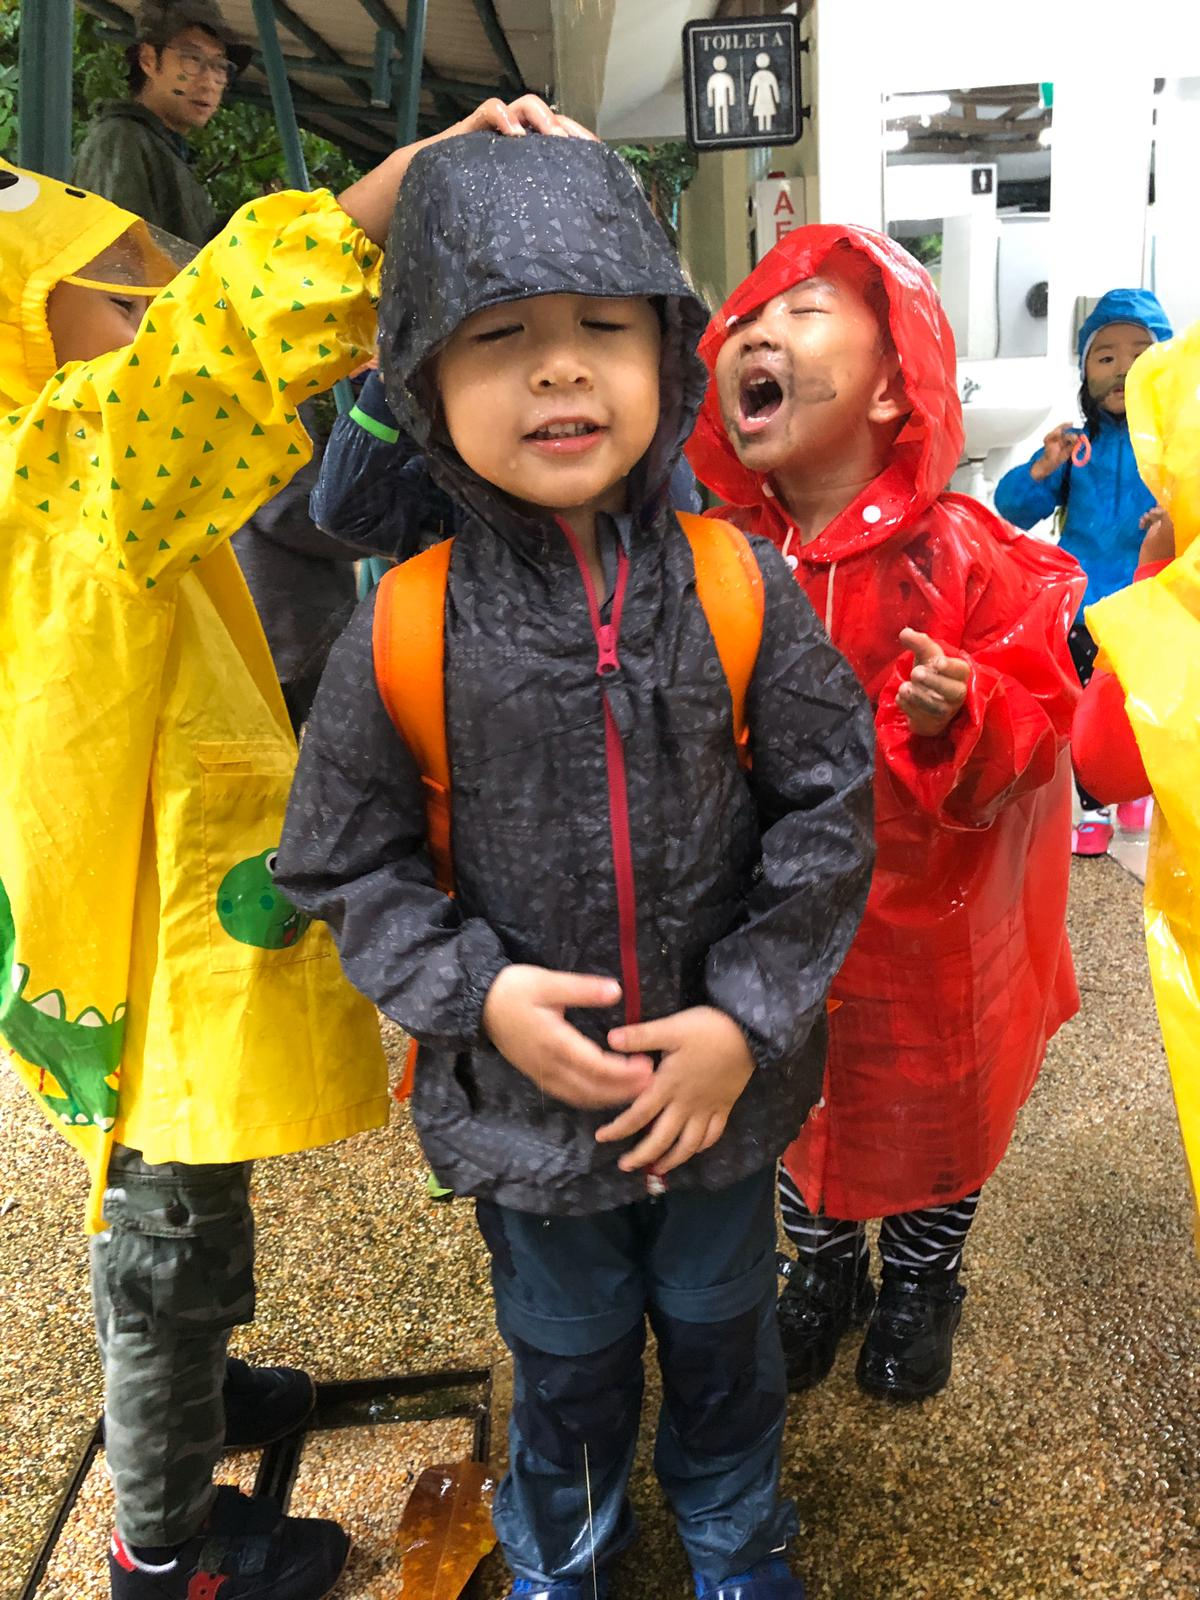 Playing in the rain!